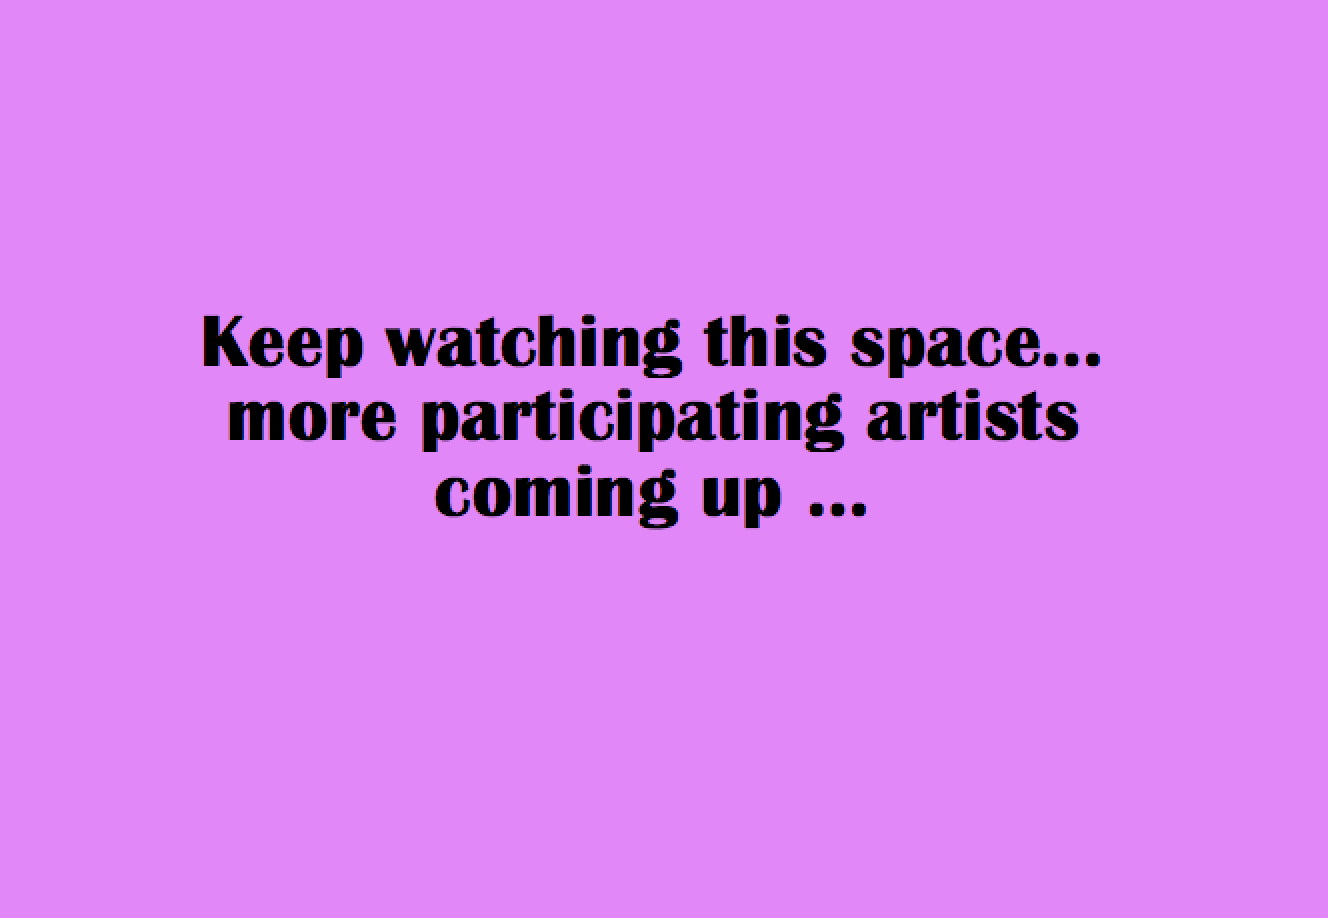 watch this space ...